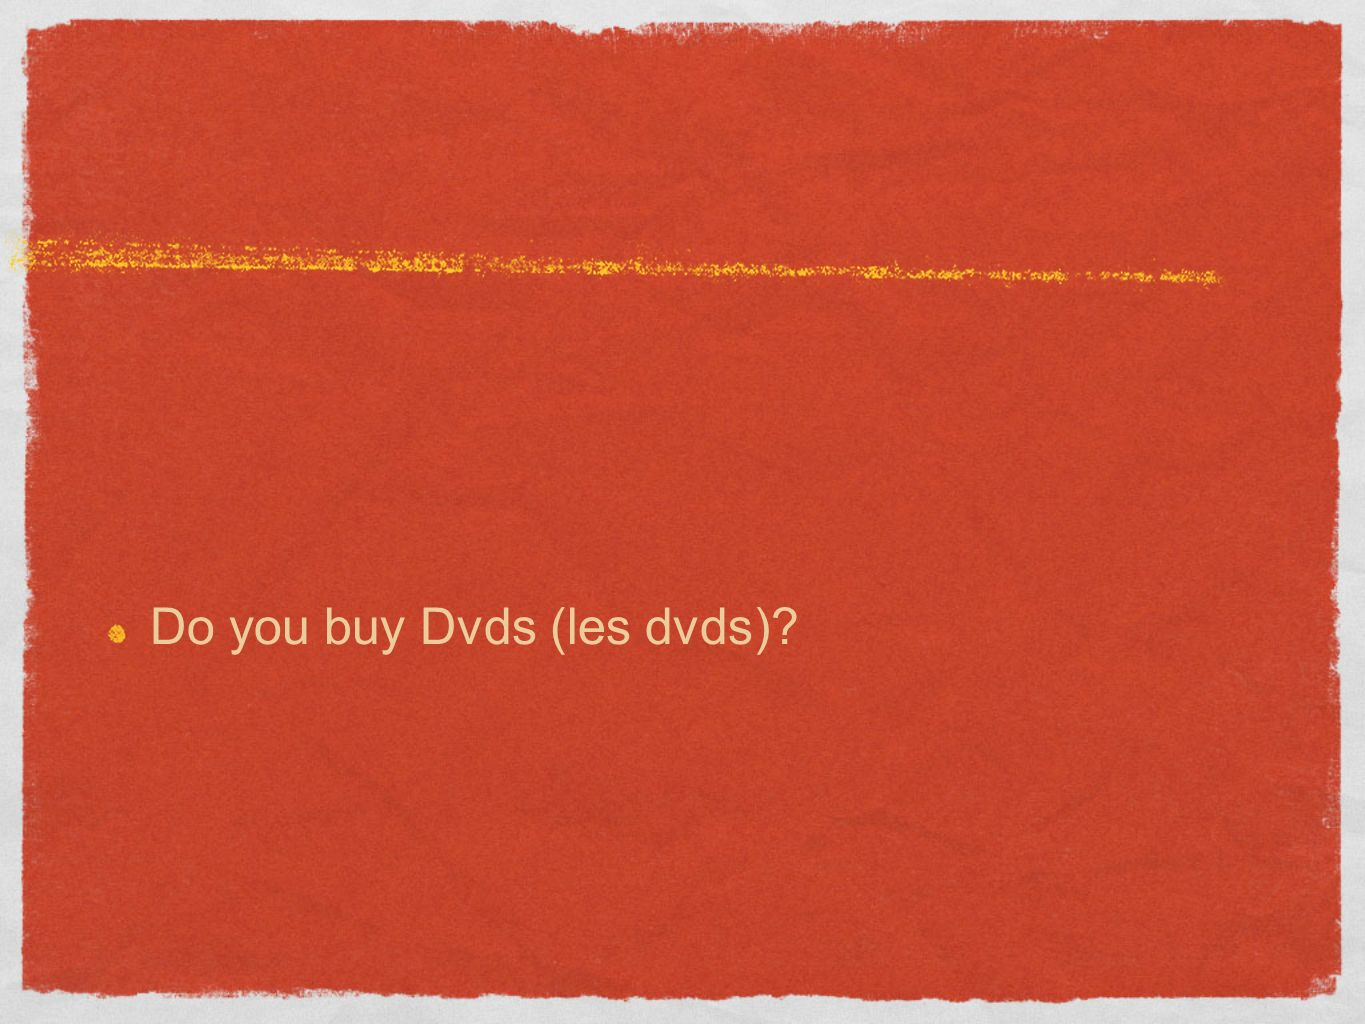 Do you buy Dvds (les dvds)?